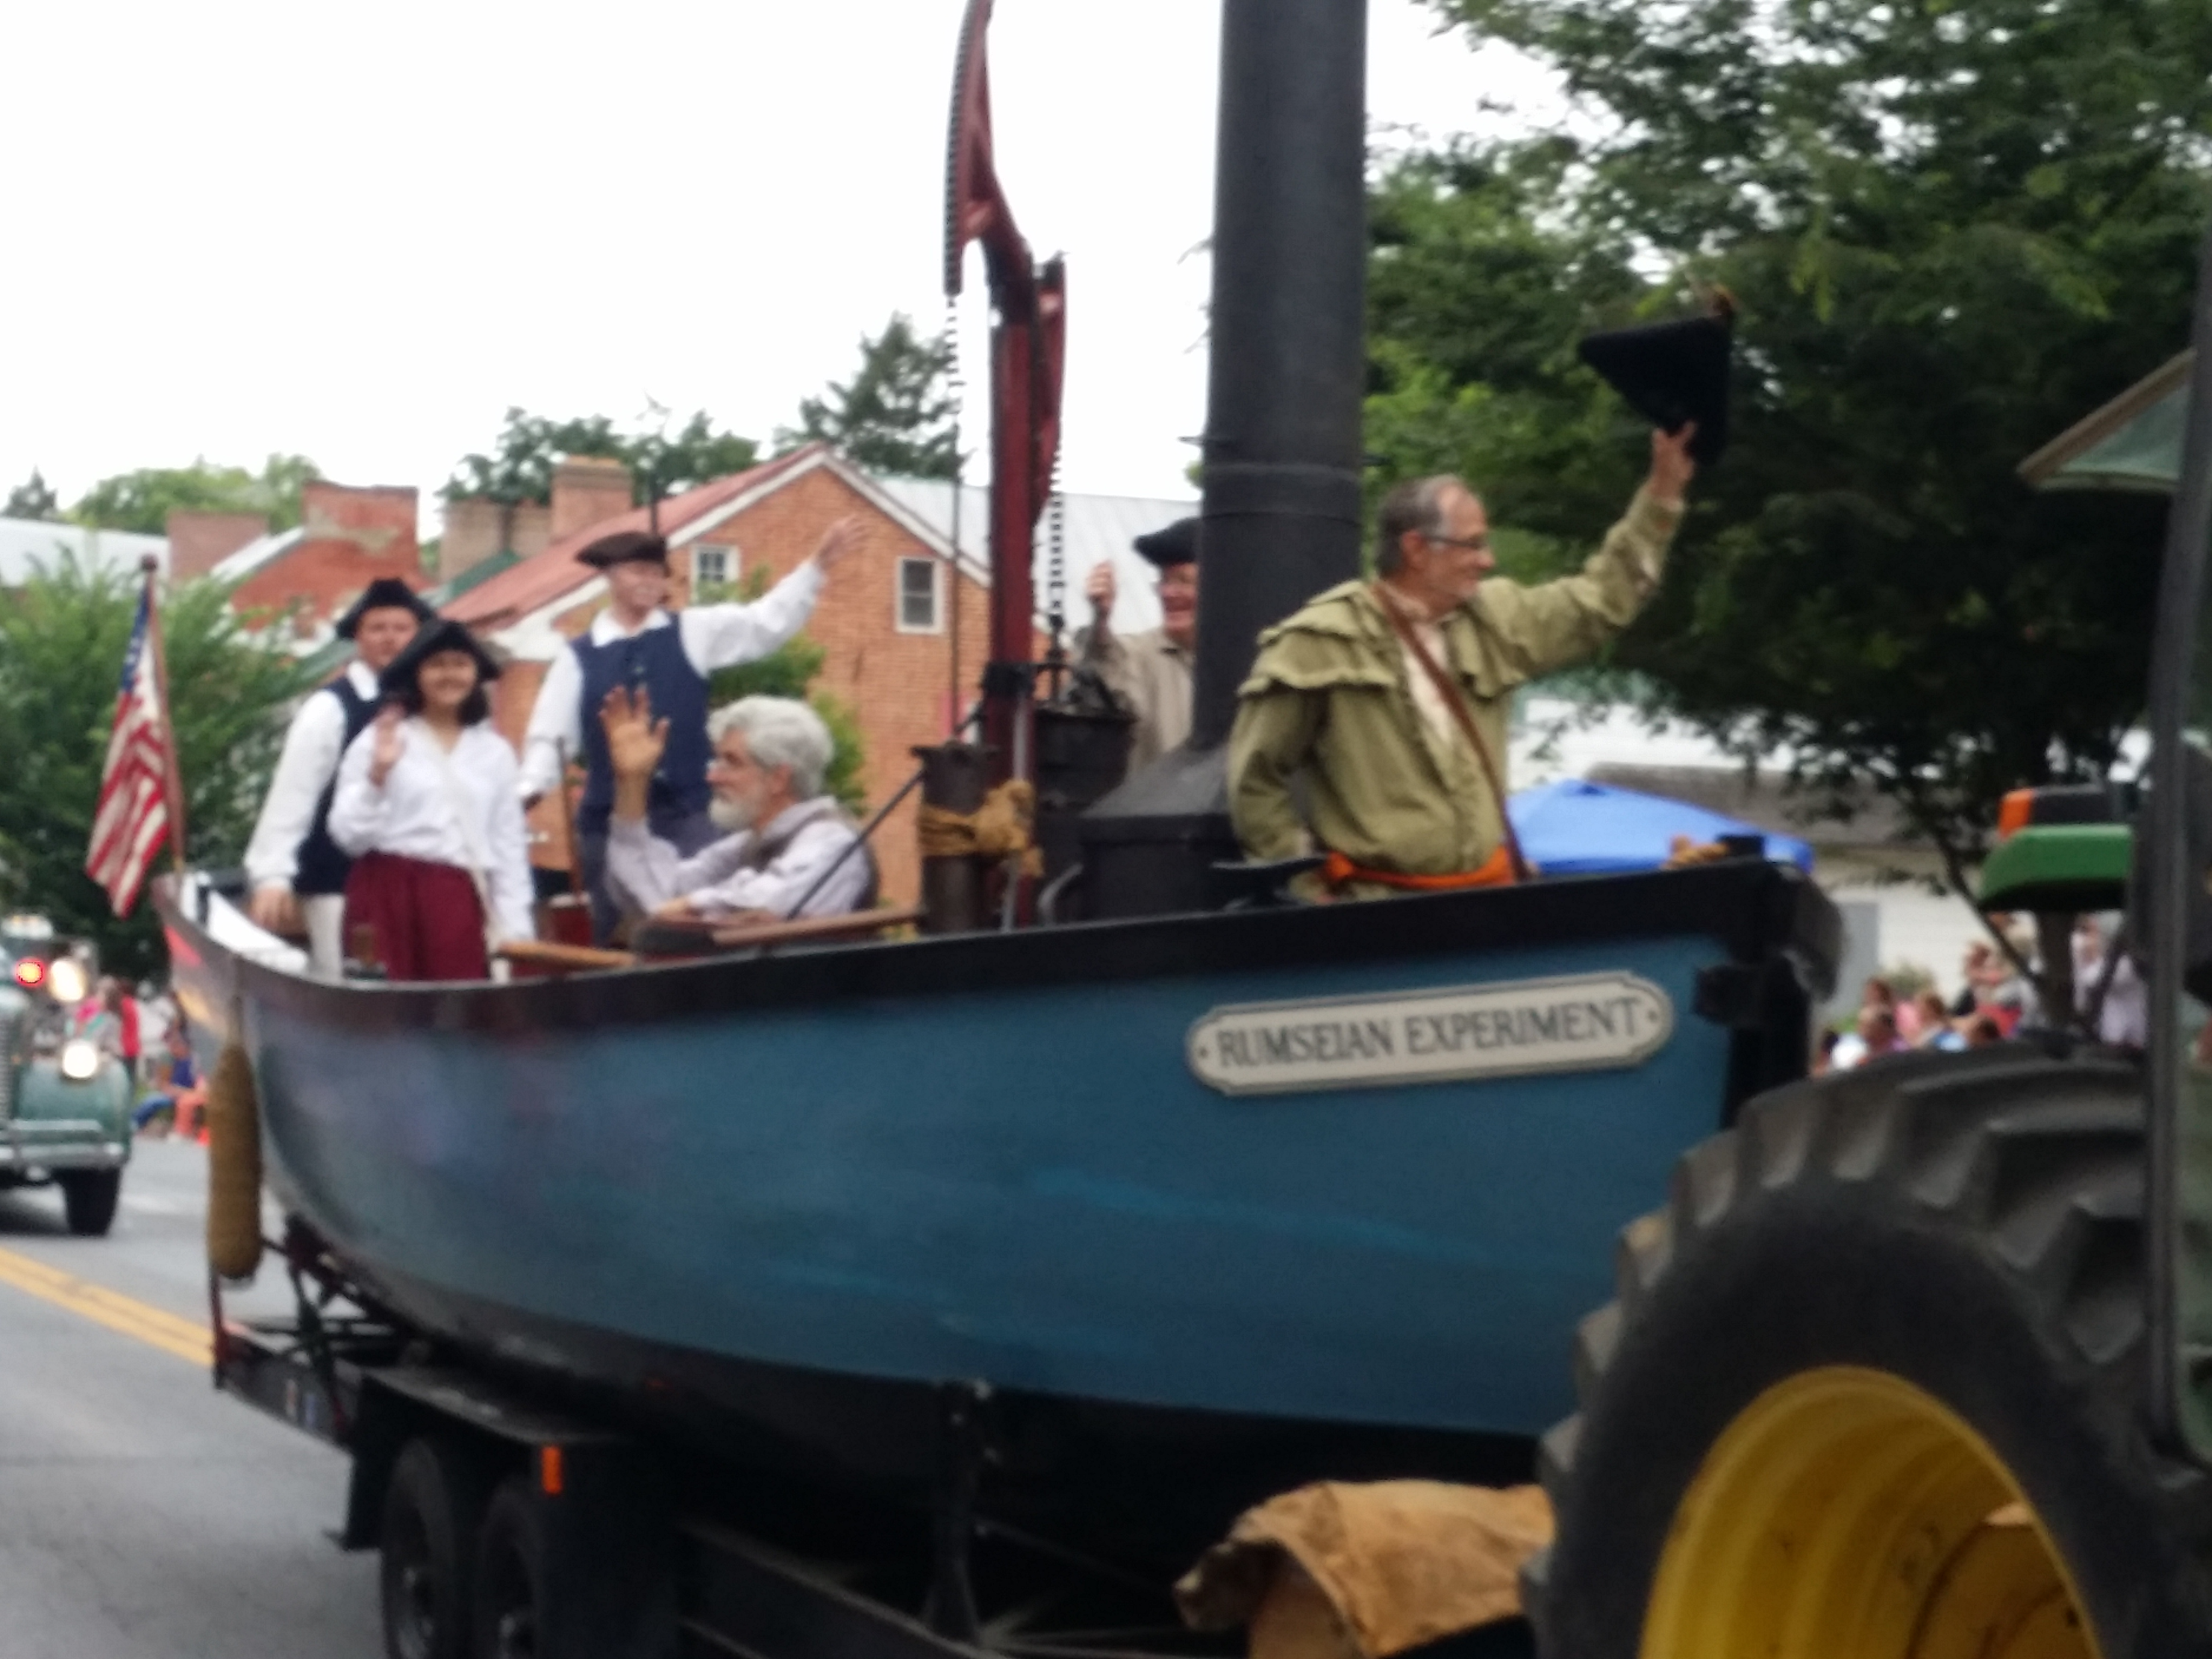 Replica of the Rumsey Boat in the 4th of July Parade.